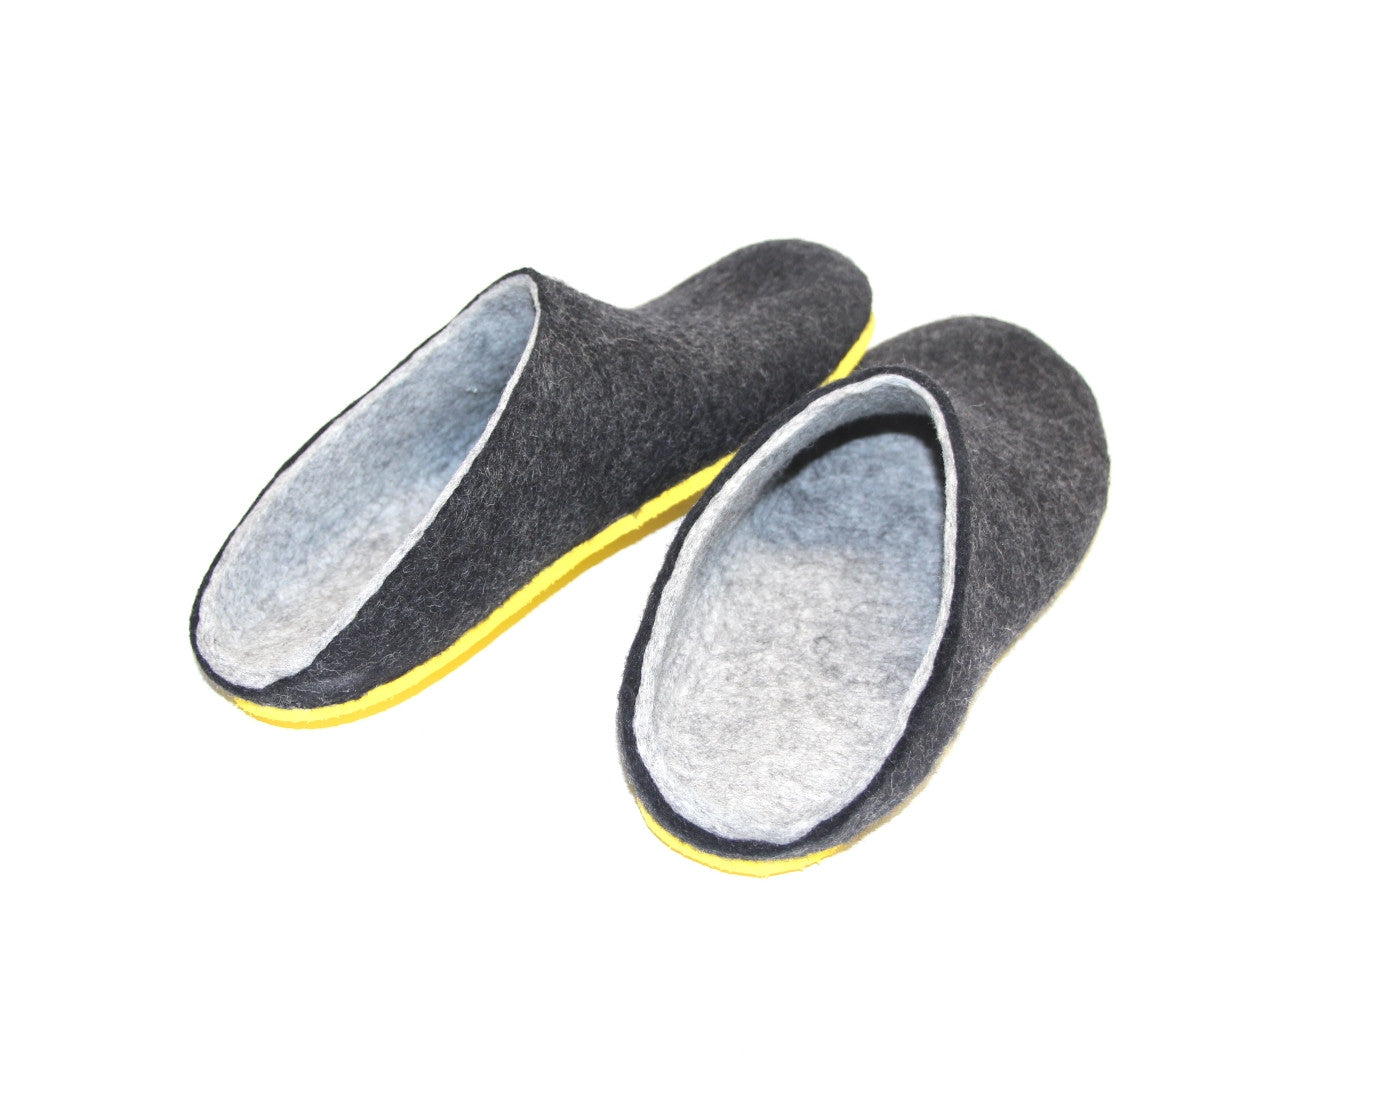 Mens Felt Clogs Charcoal Contrast Sole - Wool Walker  - 2